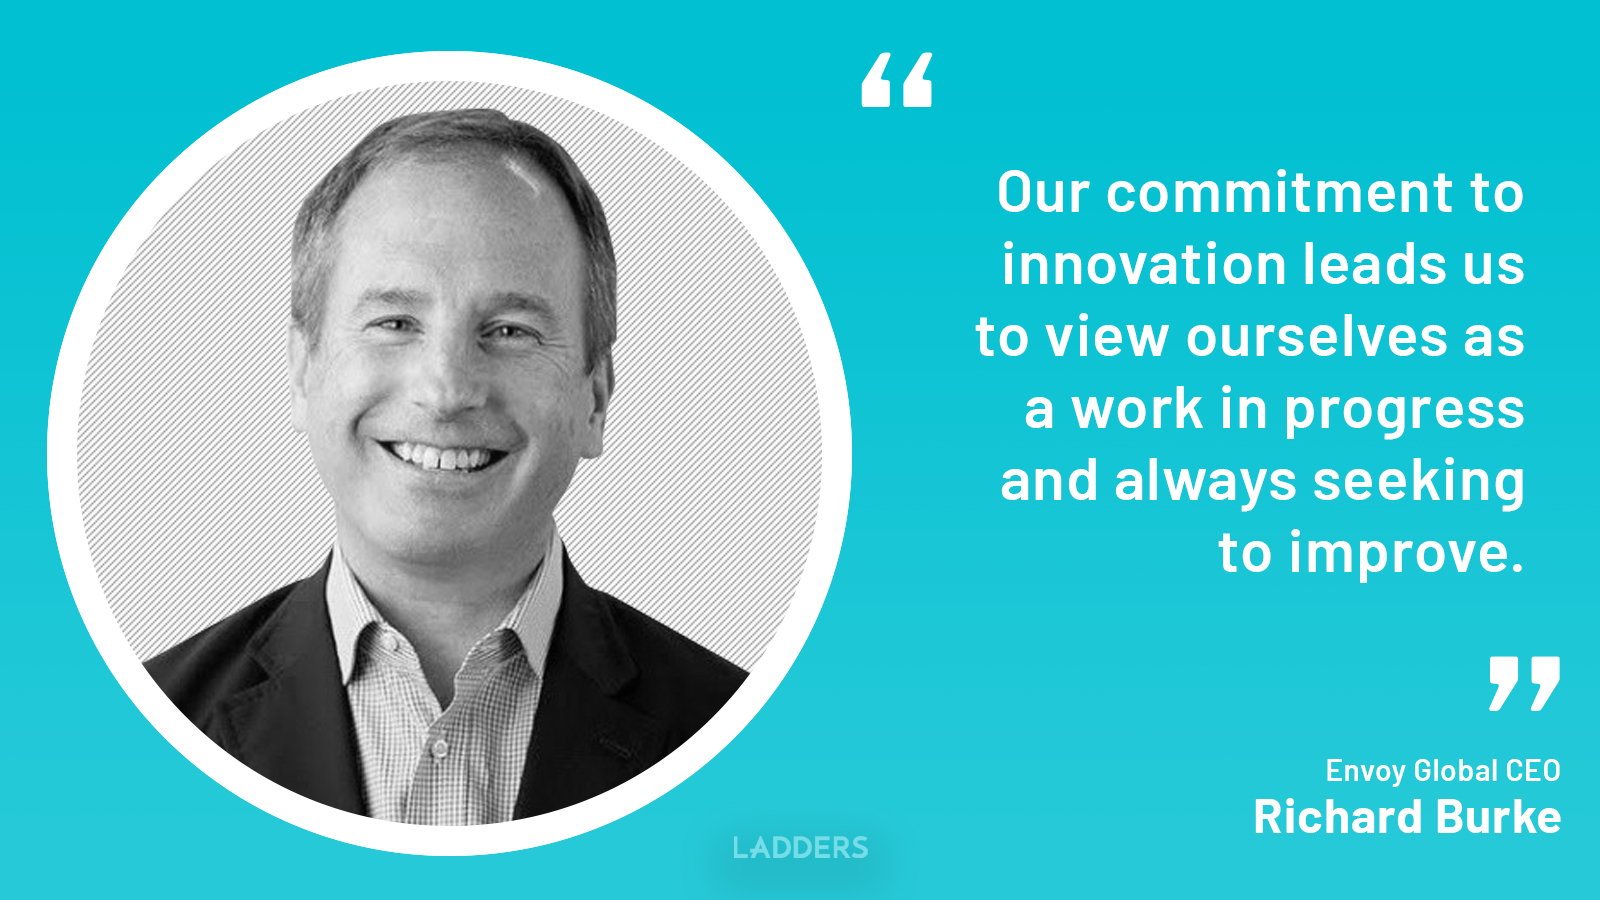 Envoy Global CEO Richard Burke on how immigration plays into the biggest trends in the recruiting landscape